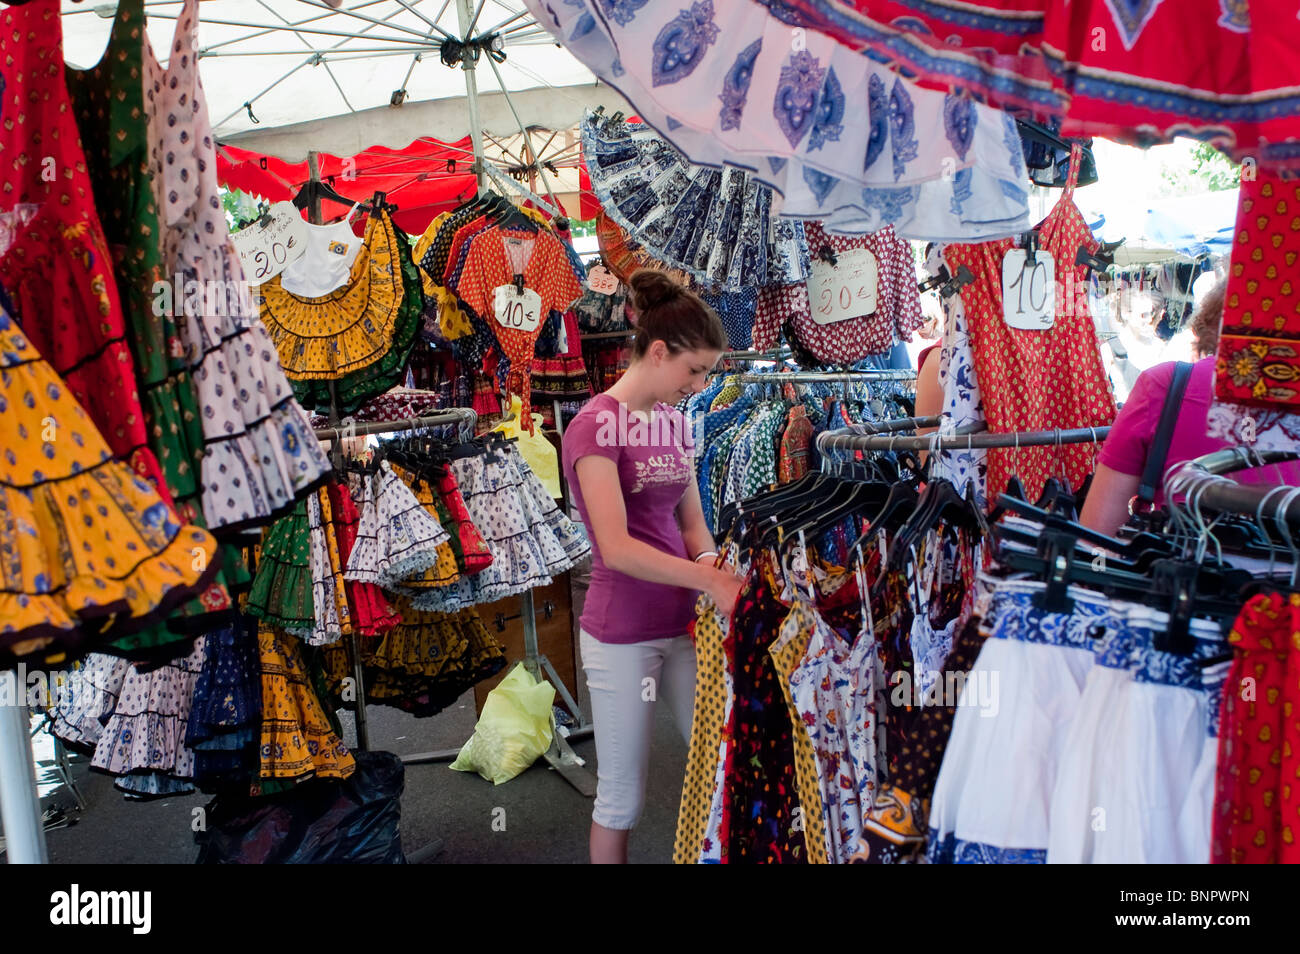 Arles, France, Tourists Shopping in Local Provincial Stores, Locally Made Clothing, Souvenirs - Stock Image